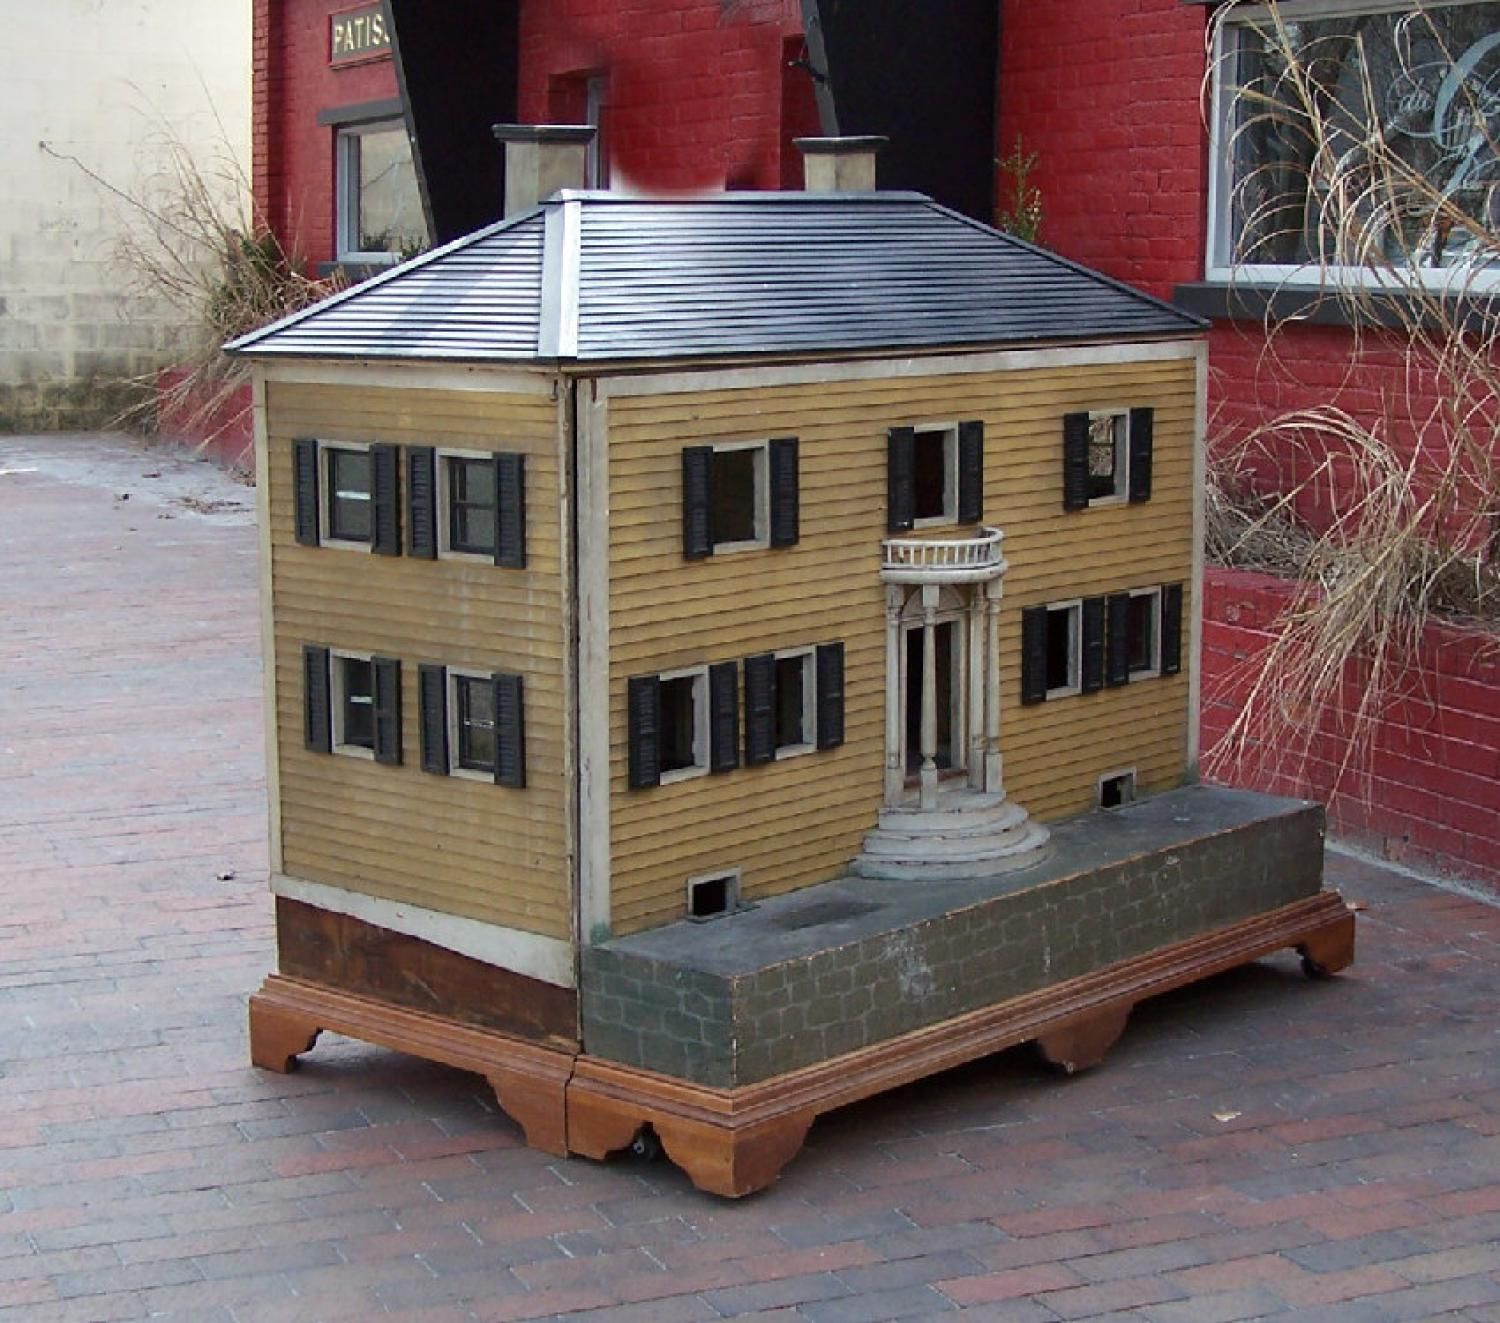 Large architects model or childs doll house c1900